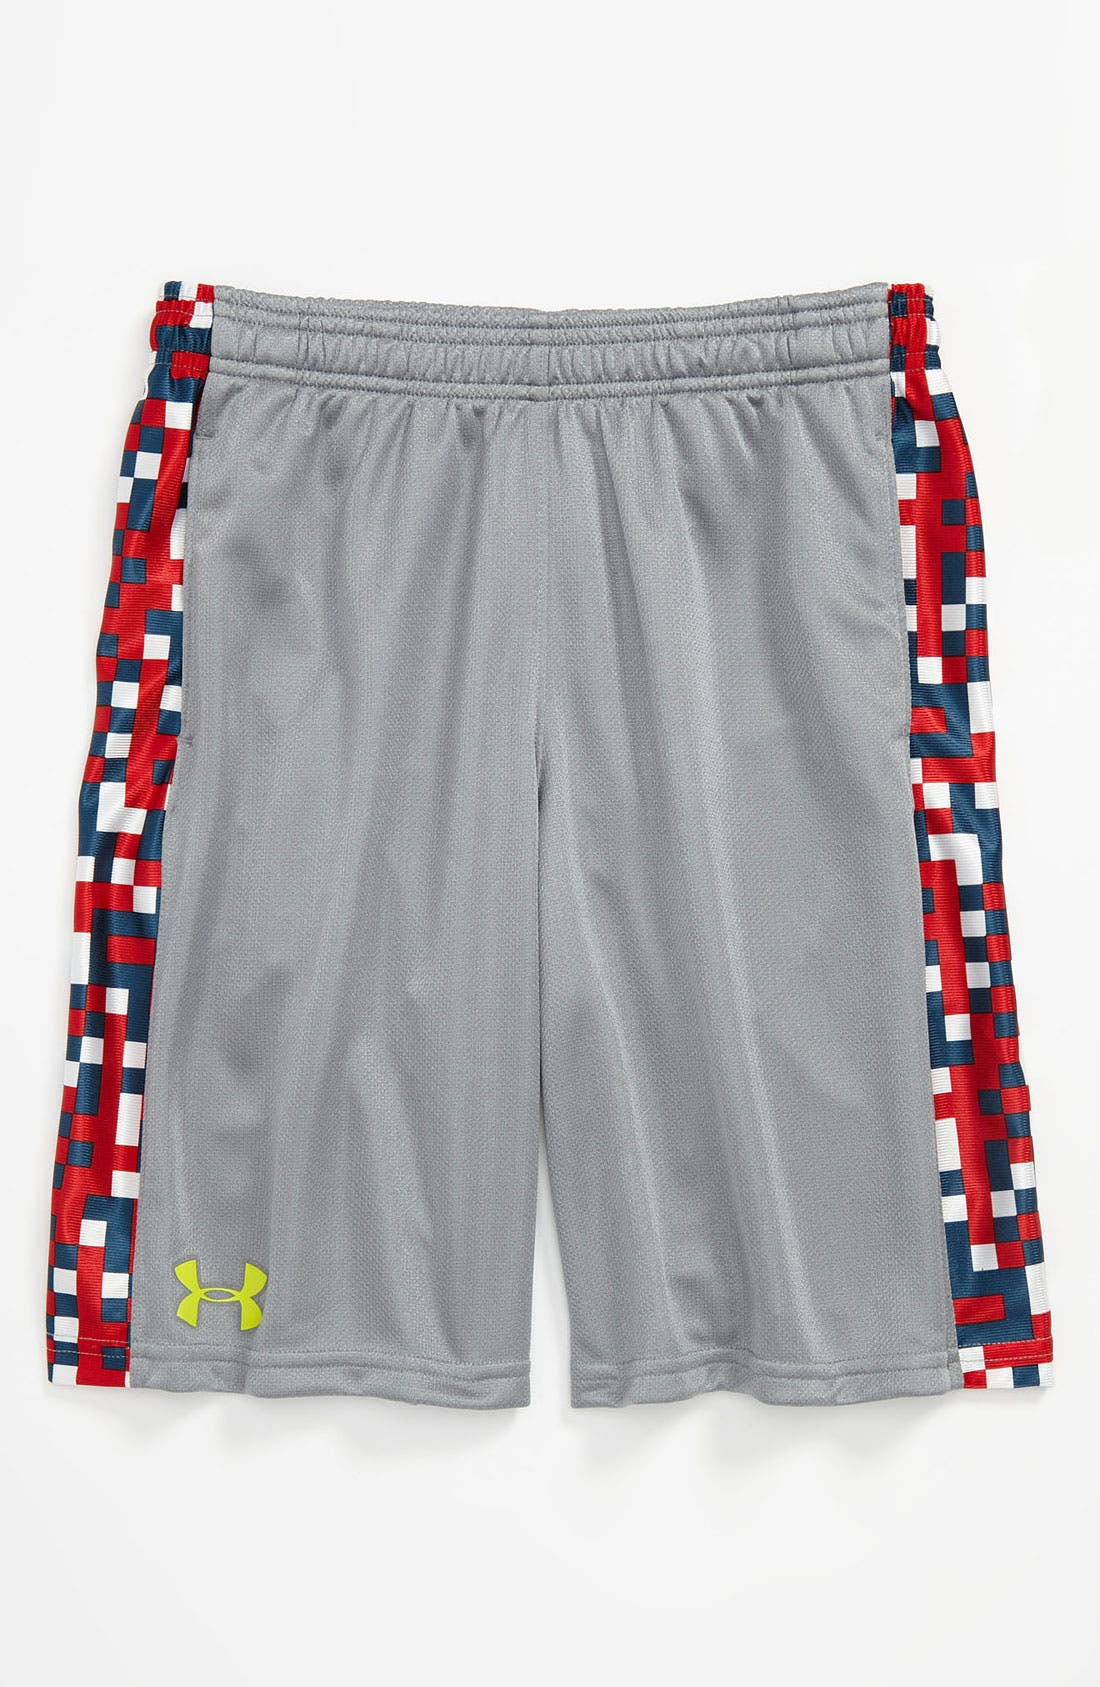 Alternate Image 1 Selected - Under Armour Print Shorts (Big Boys)